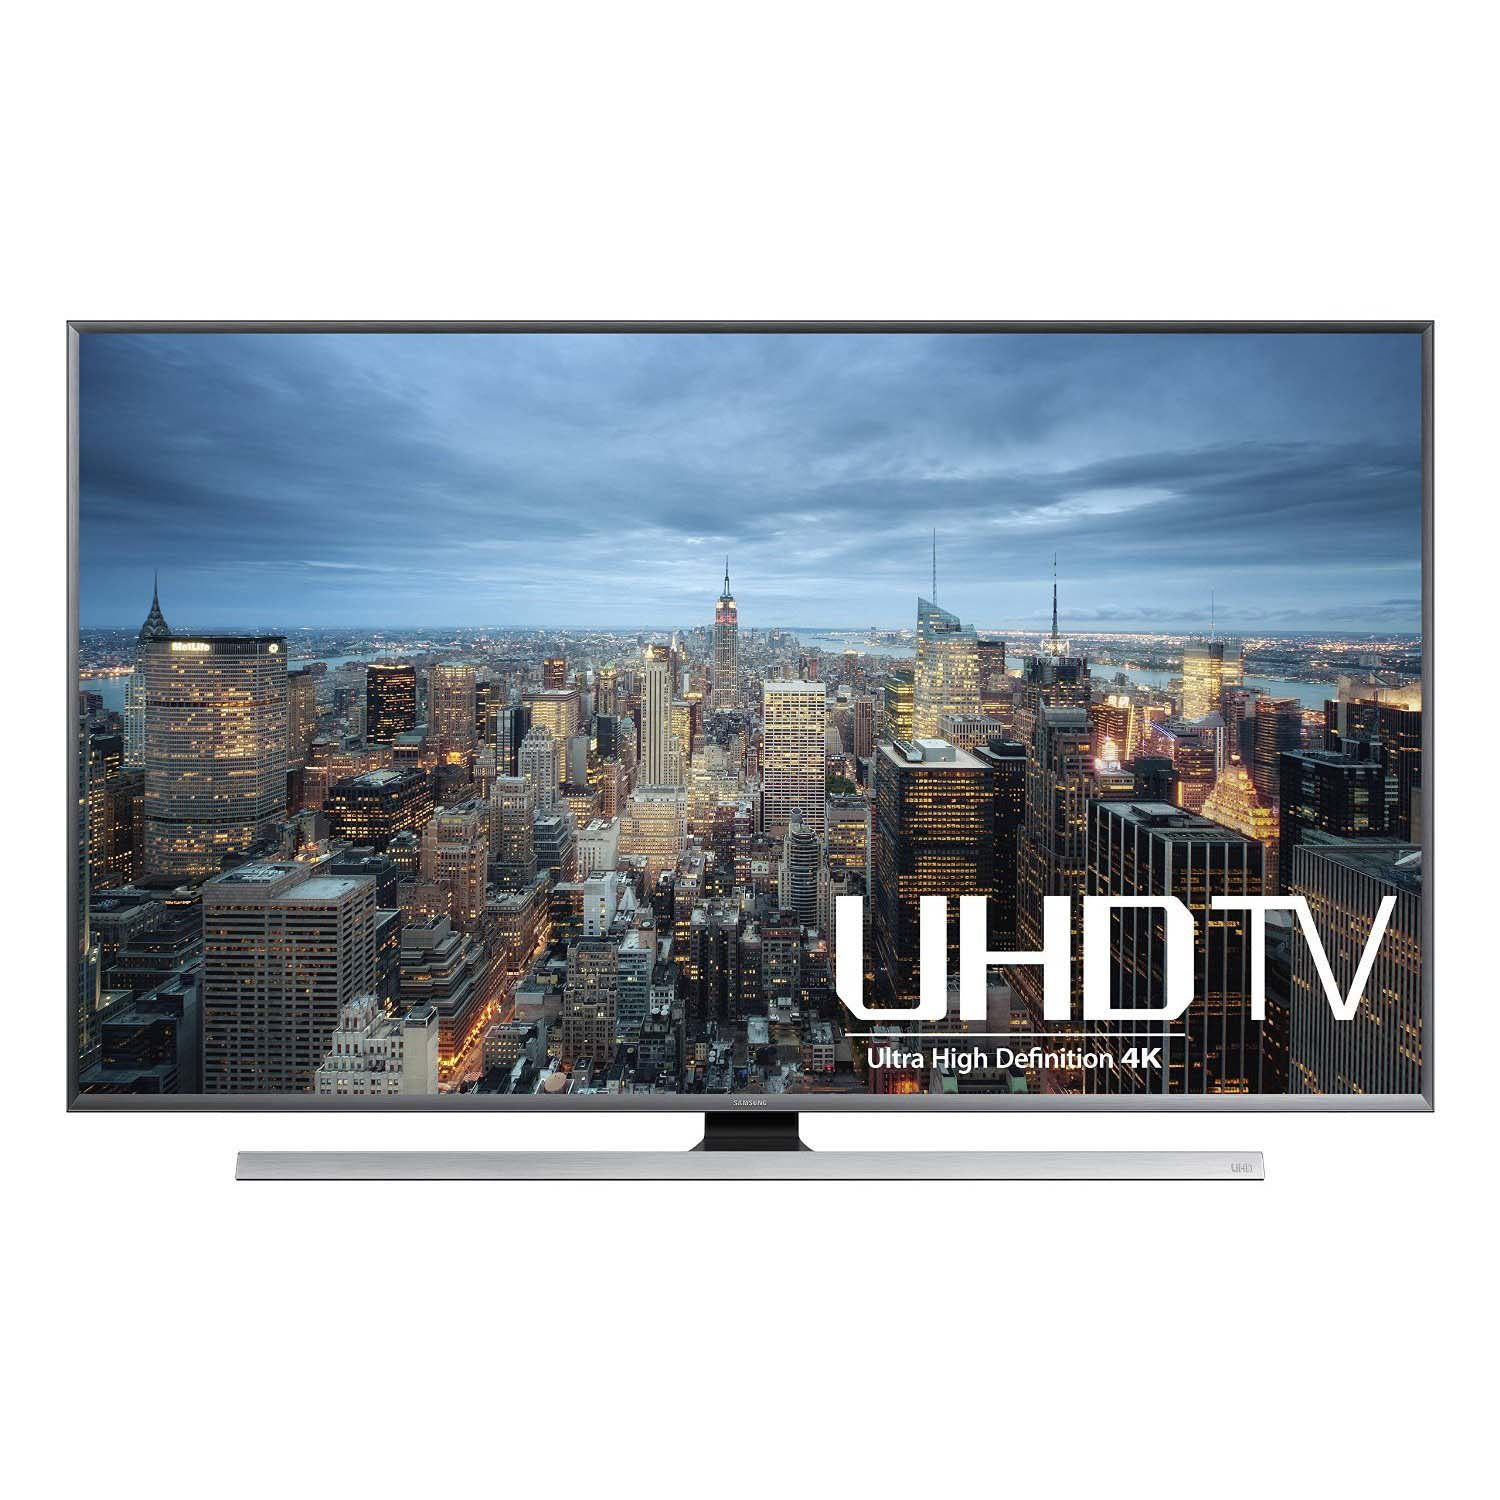 Samsung UN60JU7100 60-Inch 4K Ultra HD Smart LED TV (2015 Model) *관부가세 별도*